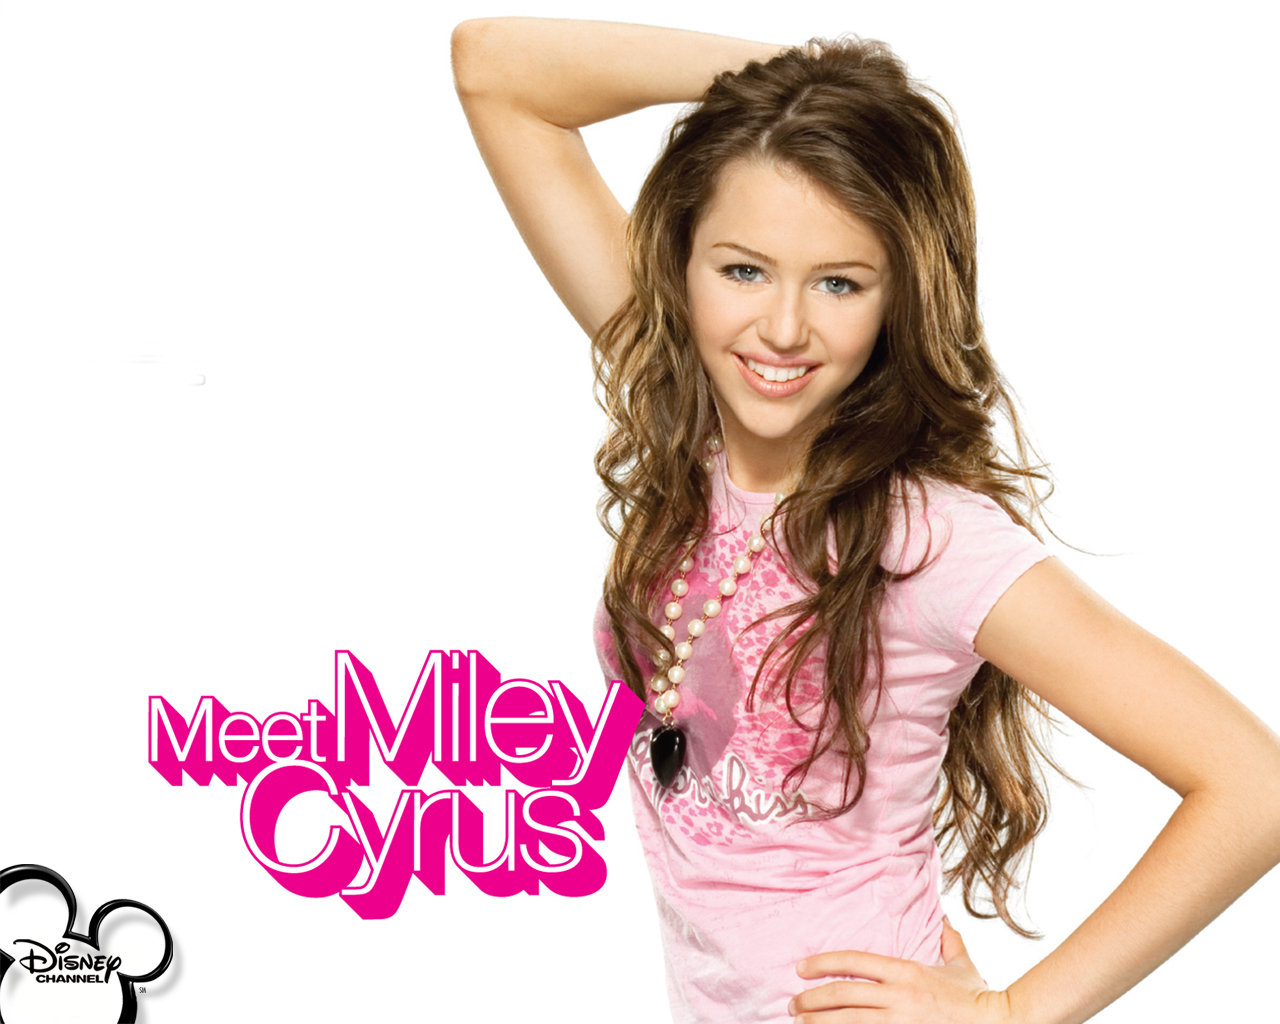 hannah montana 2 meet miley cyrus album download